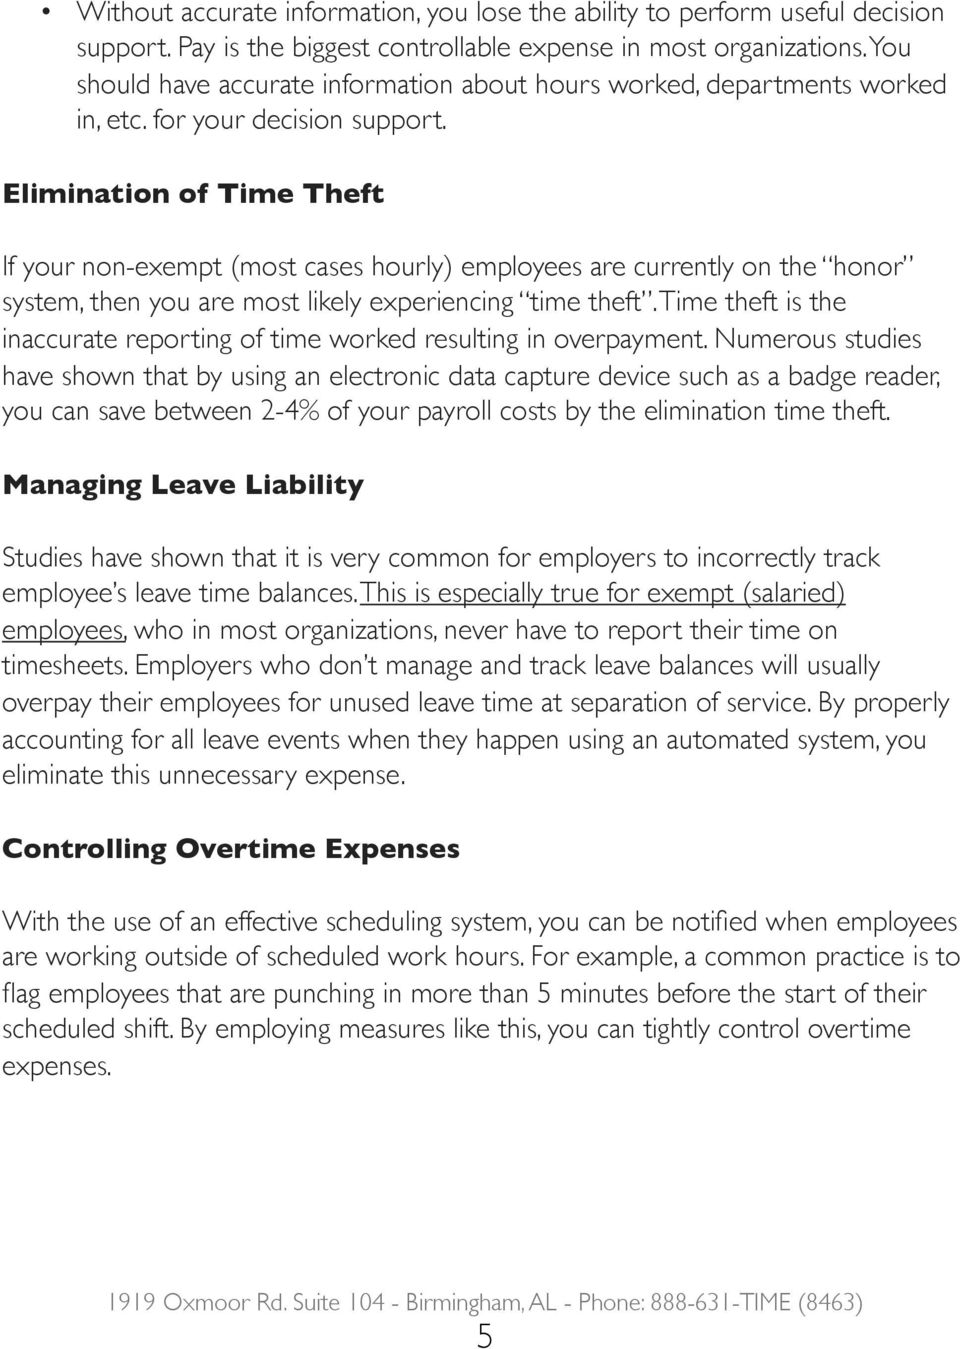 Elimination of Time Theft If your non-exempt (most cases hourly) employees are currently on the honor system, then you are most likely experiencing time theft.